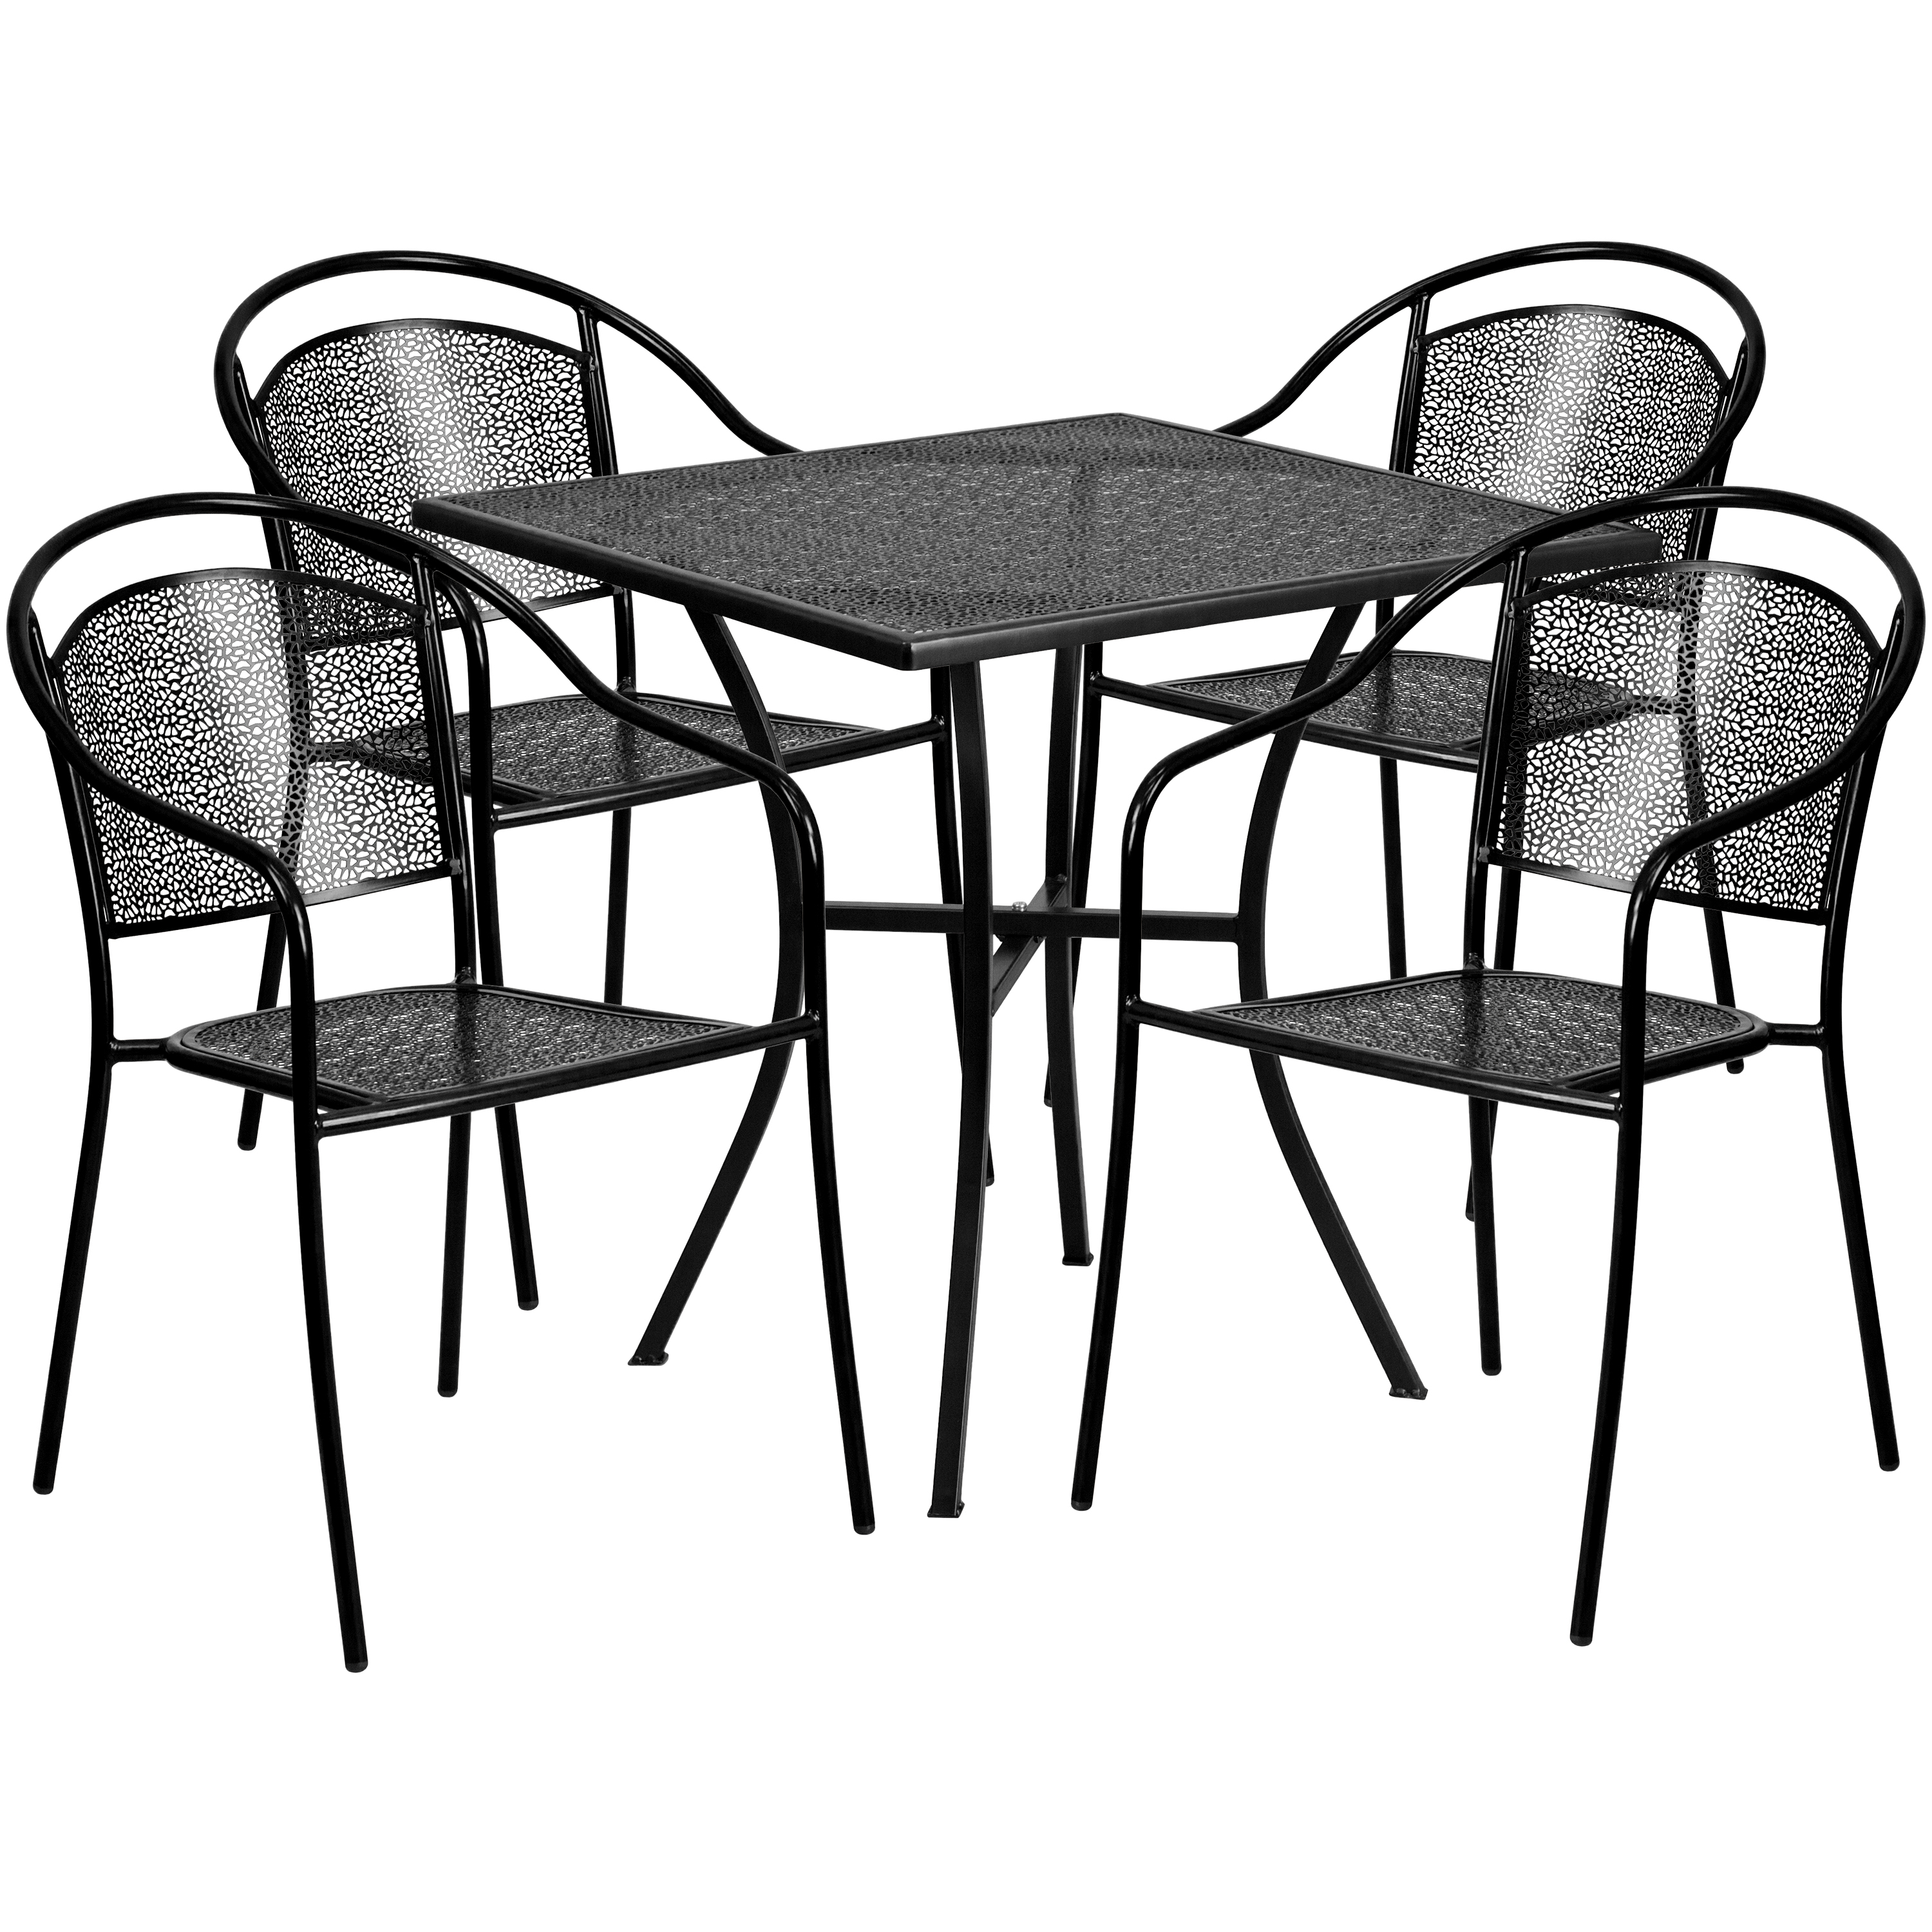 "Flash Furniture 28"" Square Indoor-Outdoor Steel Patio Table Set with 4 Round Back Chairs, Multiple Colors"